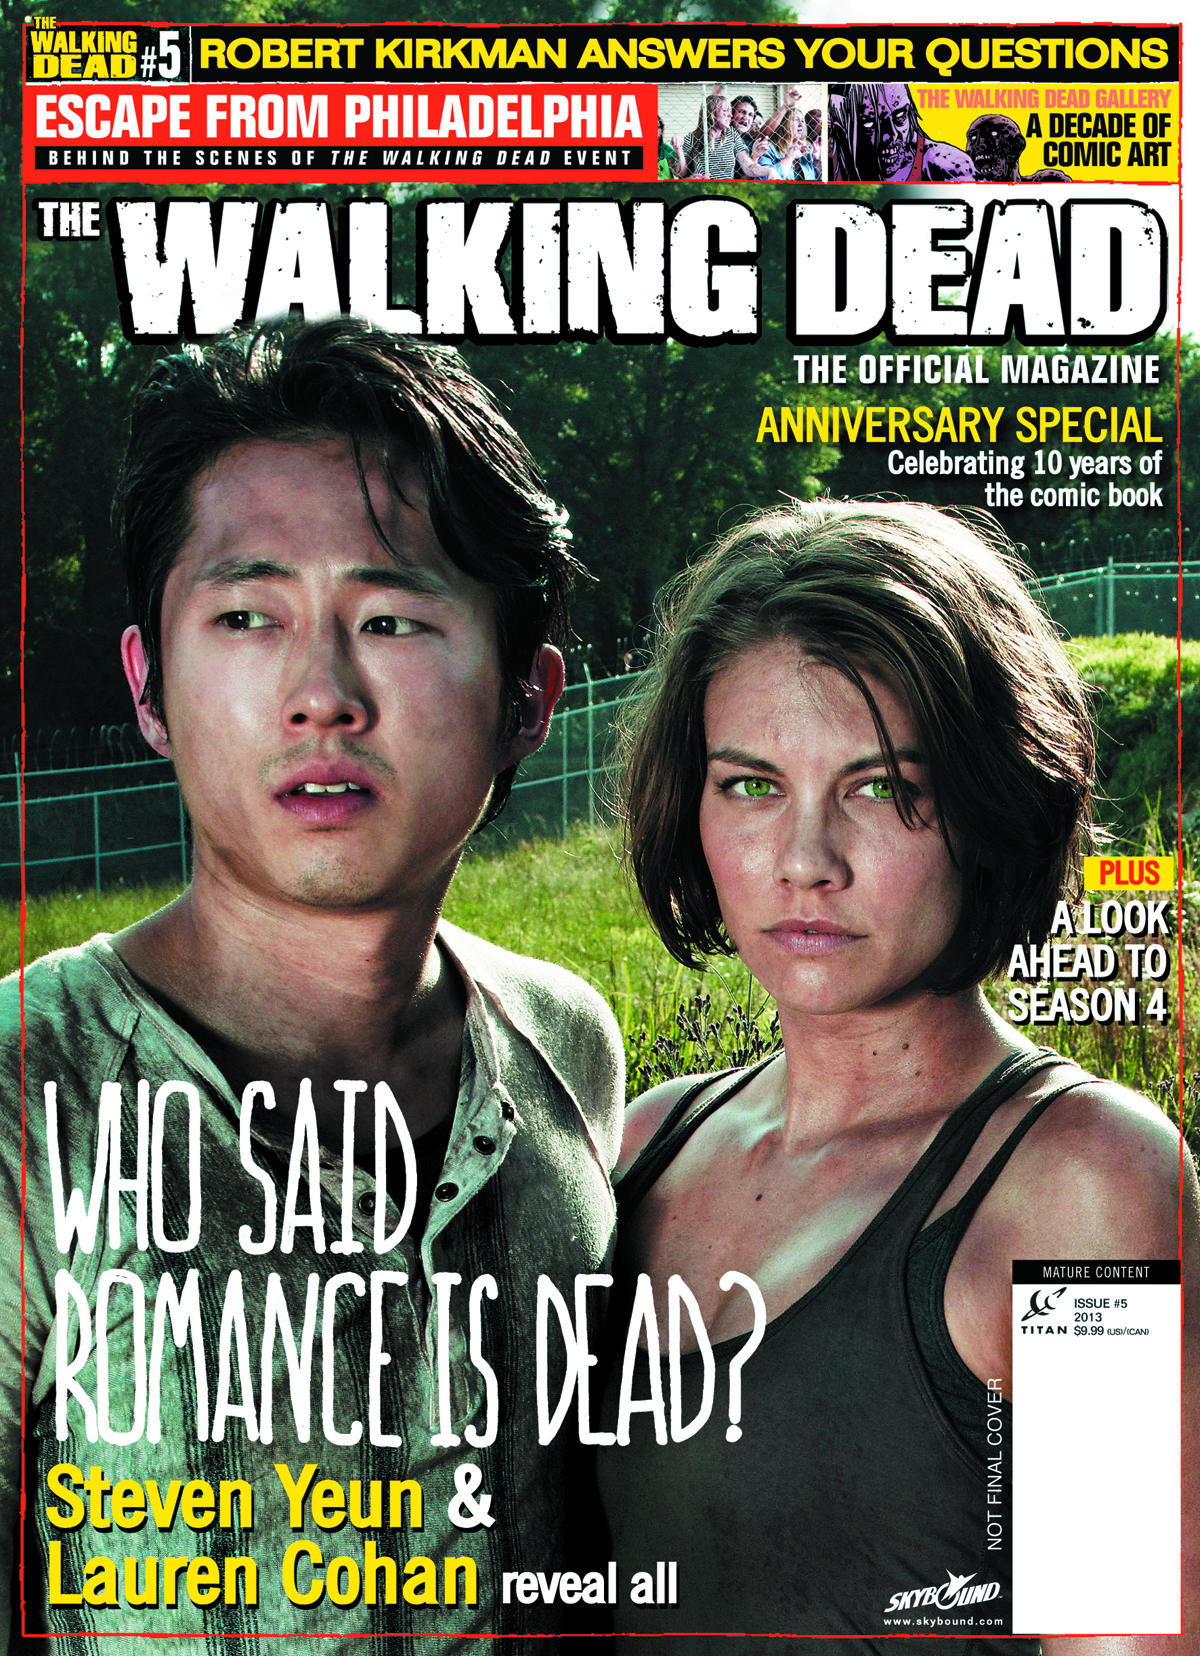 WALKING DEAD MAGAZINE #5 NEWSSTAND ED